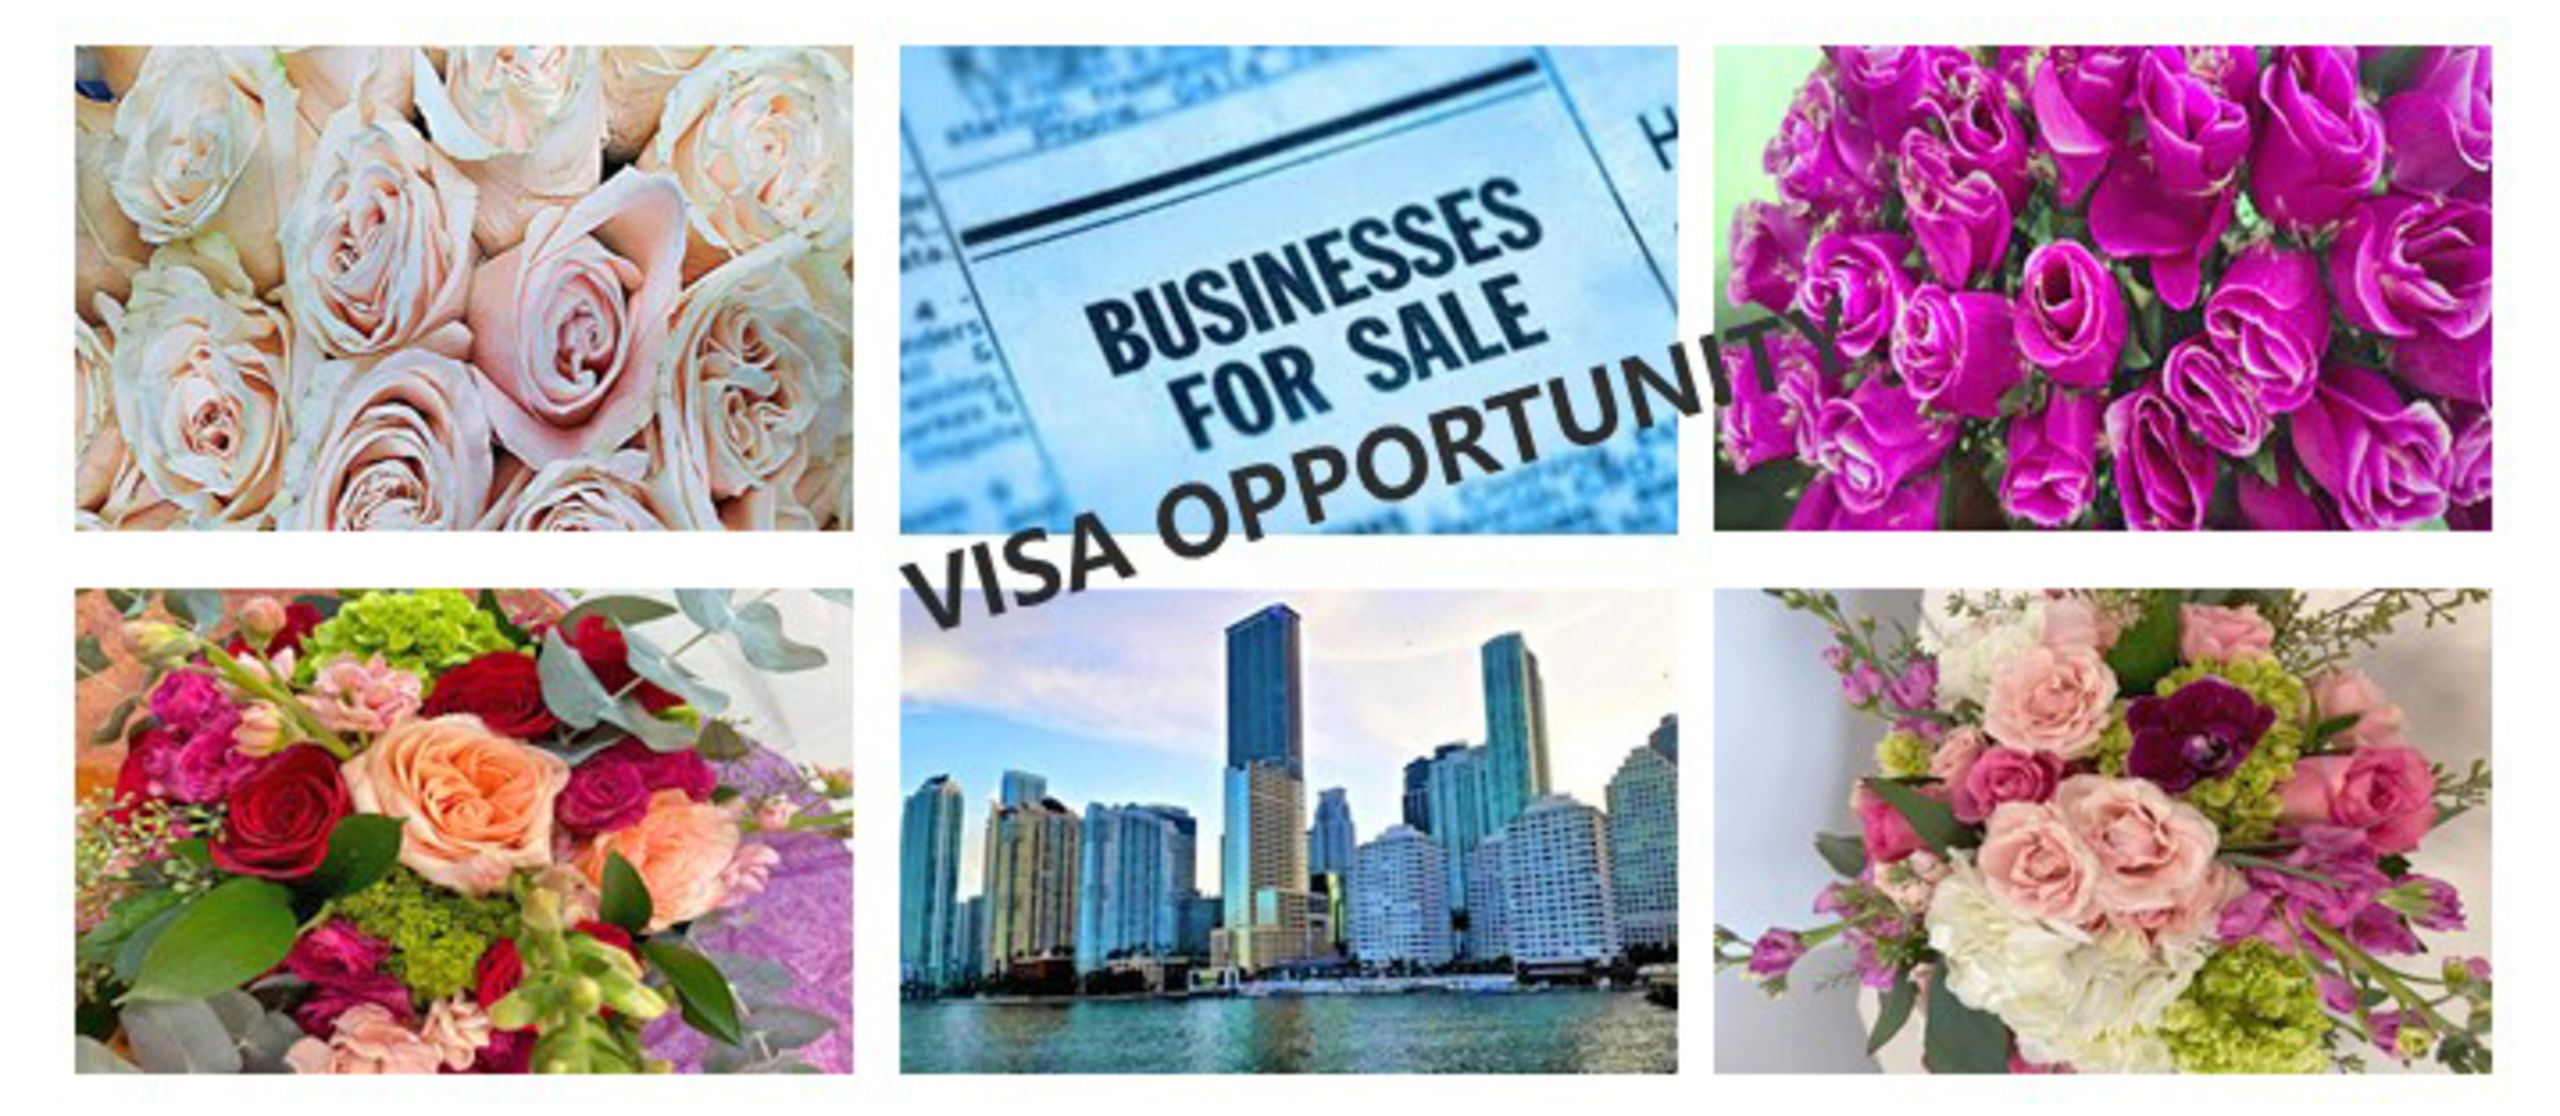 World renowned & Successful Flower Shop for Sale ~ Miami , FL 33160